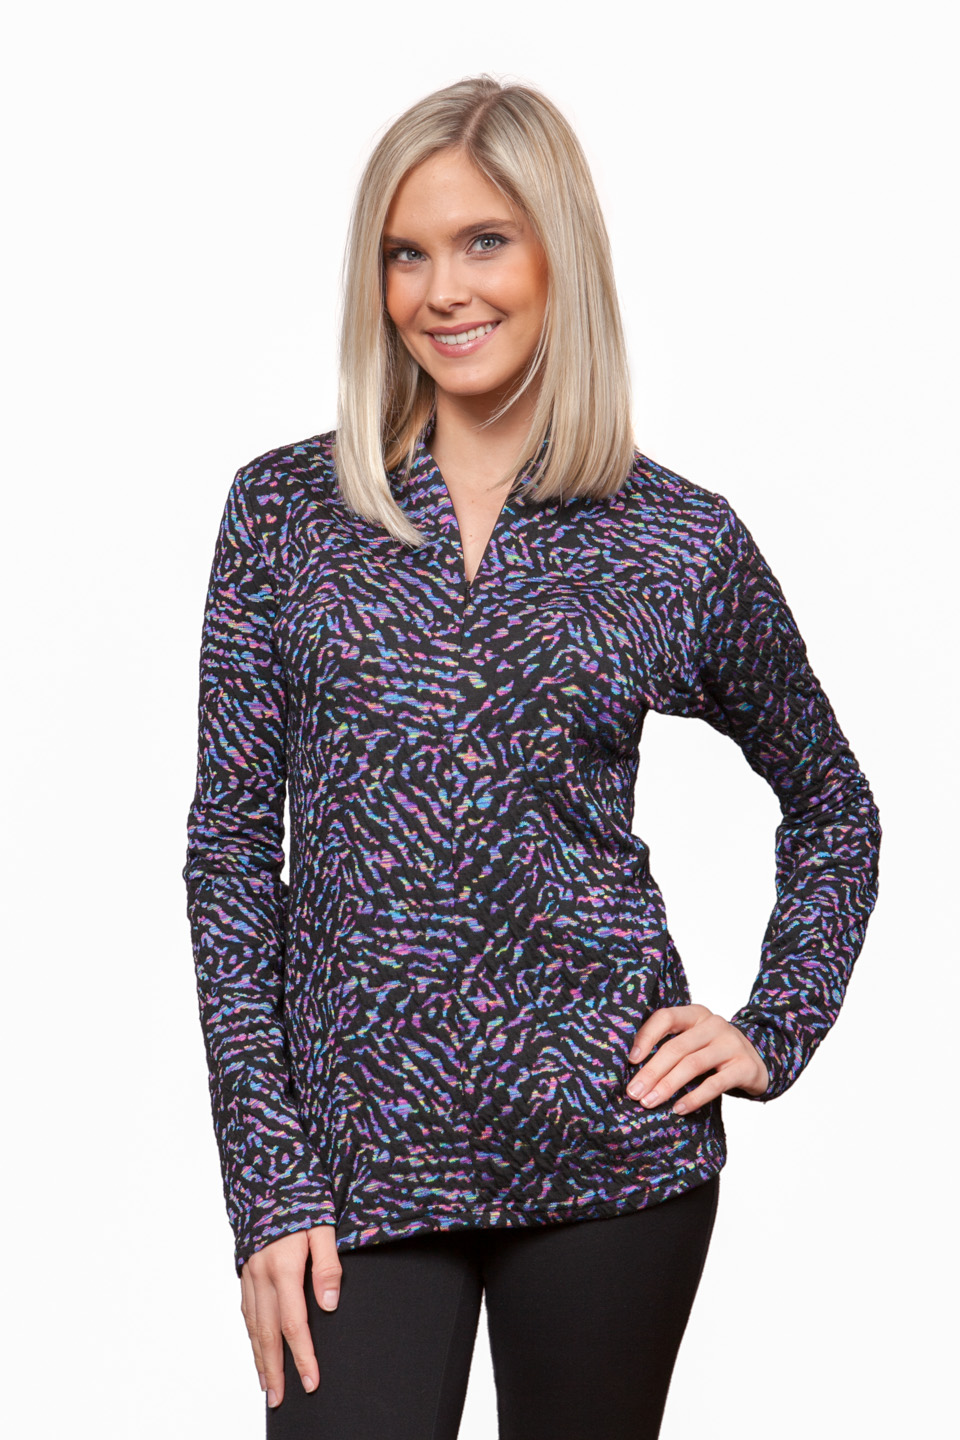 Copy of Style # 62117-16, p. 11<br>Colorful Jacquard<br>Pattern: Midnight Sky<br> &nbsp